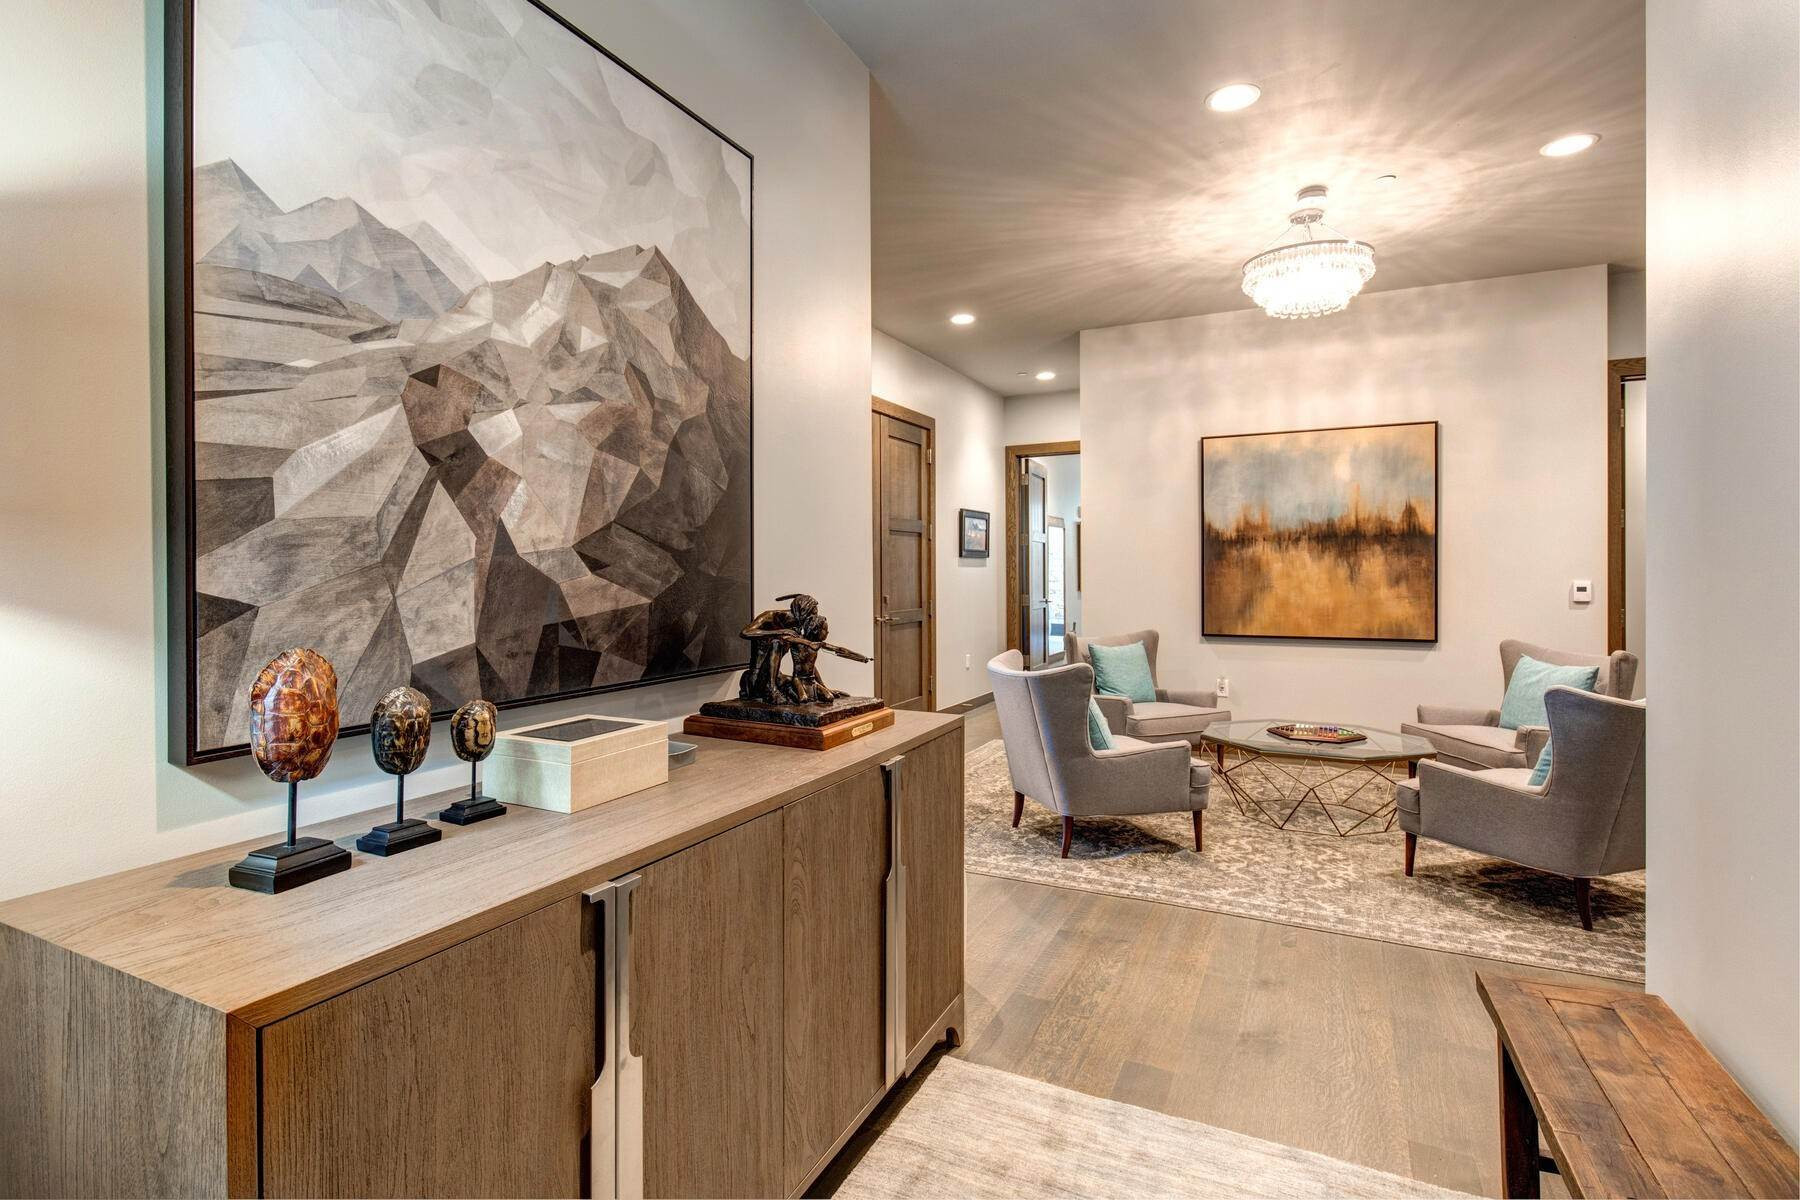 27. Condominiums for Sale at Ski-In Ski-Out Alpine Luxury Living at Stein Eriksen Residences 6702 Stein Circle #131 Park City, Utah 84060 United States